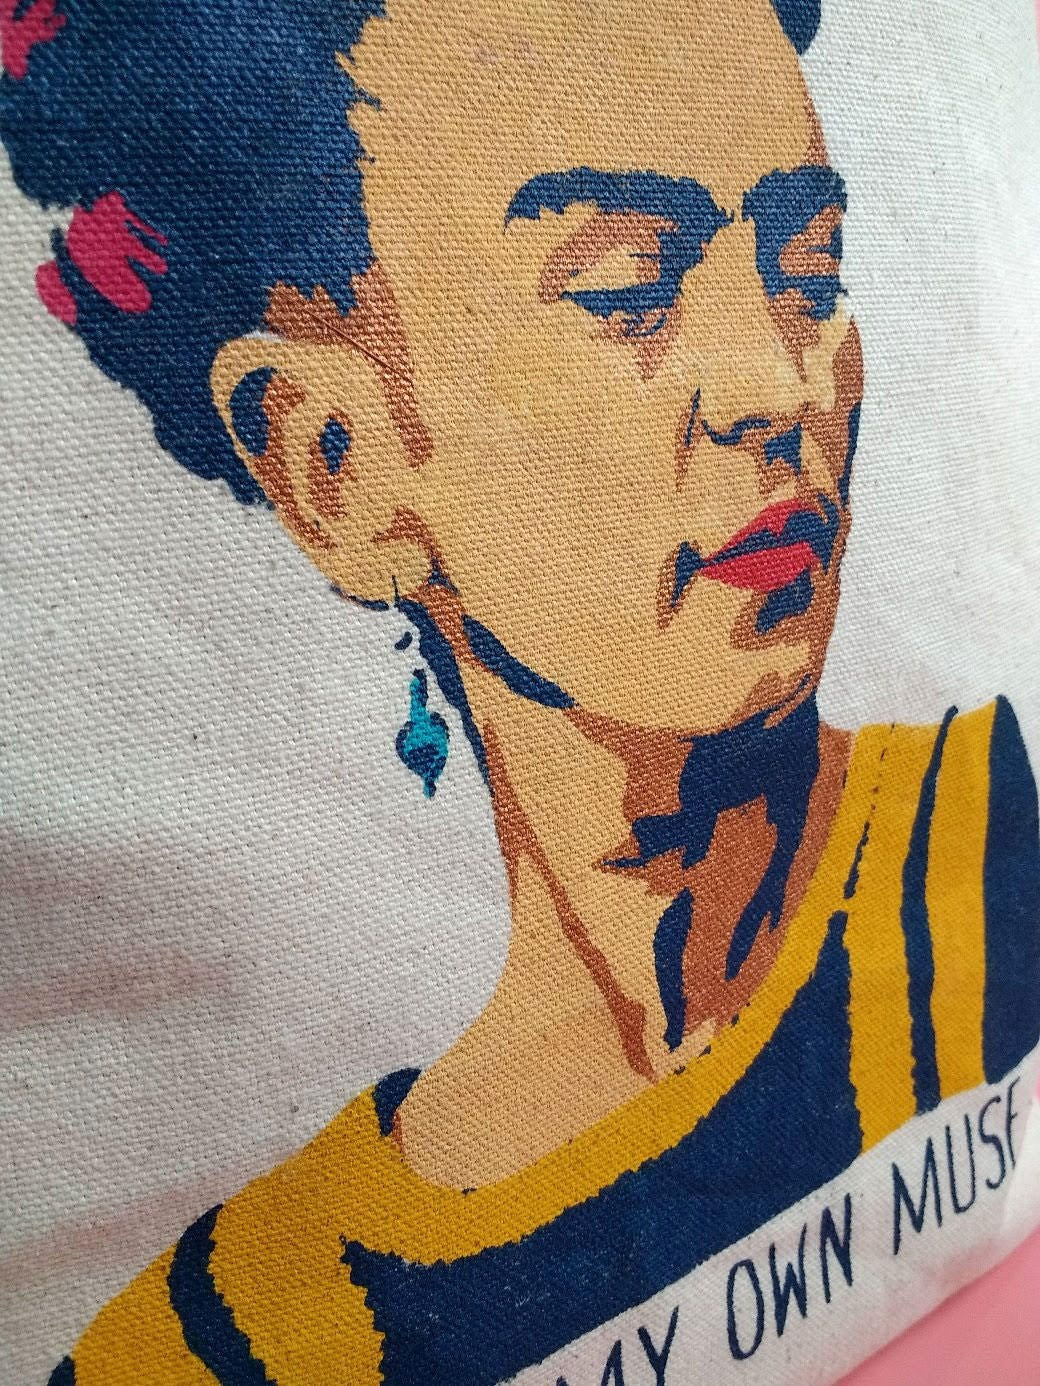 I Am My Own Muse Tote Bag Canvas Frida Kahlo Purse Reusable For Her